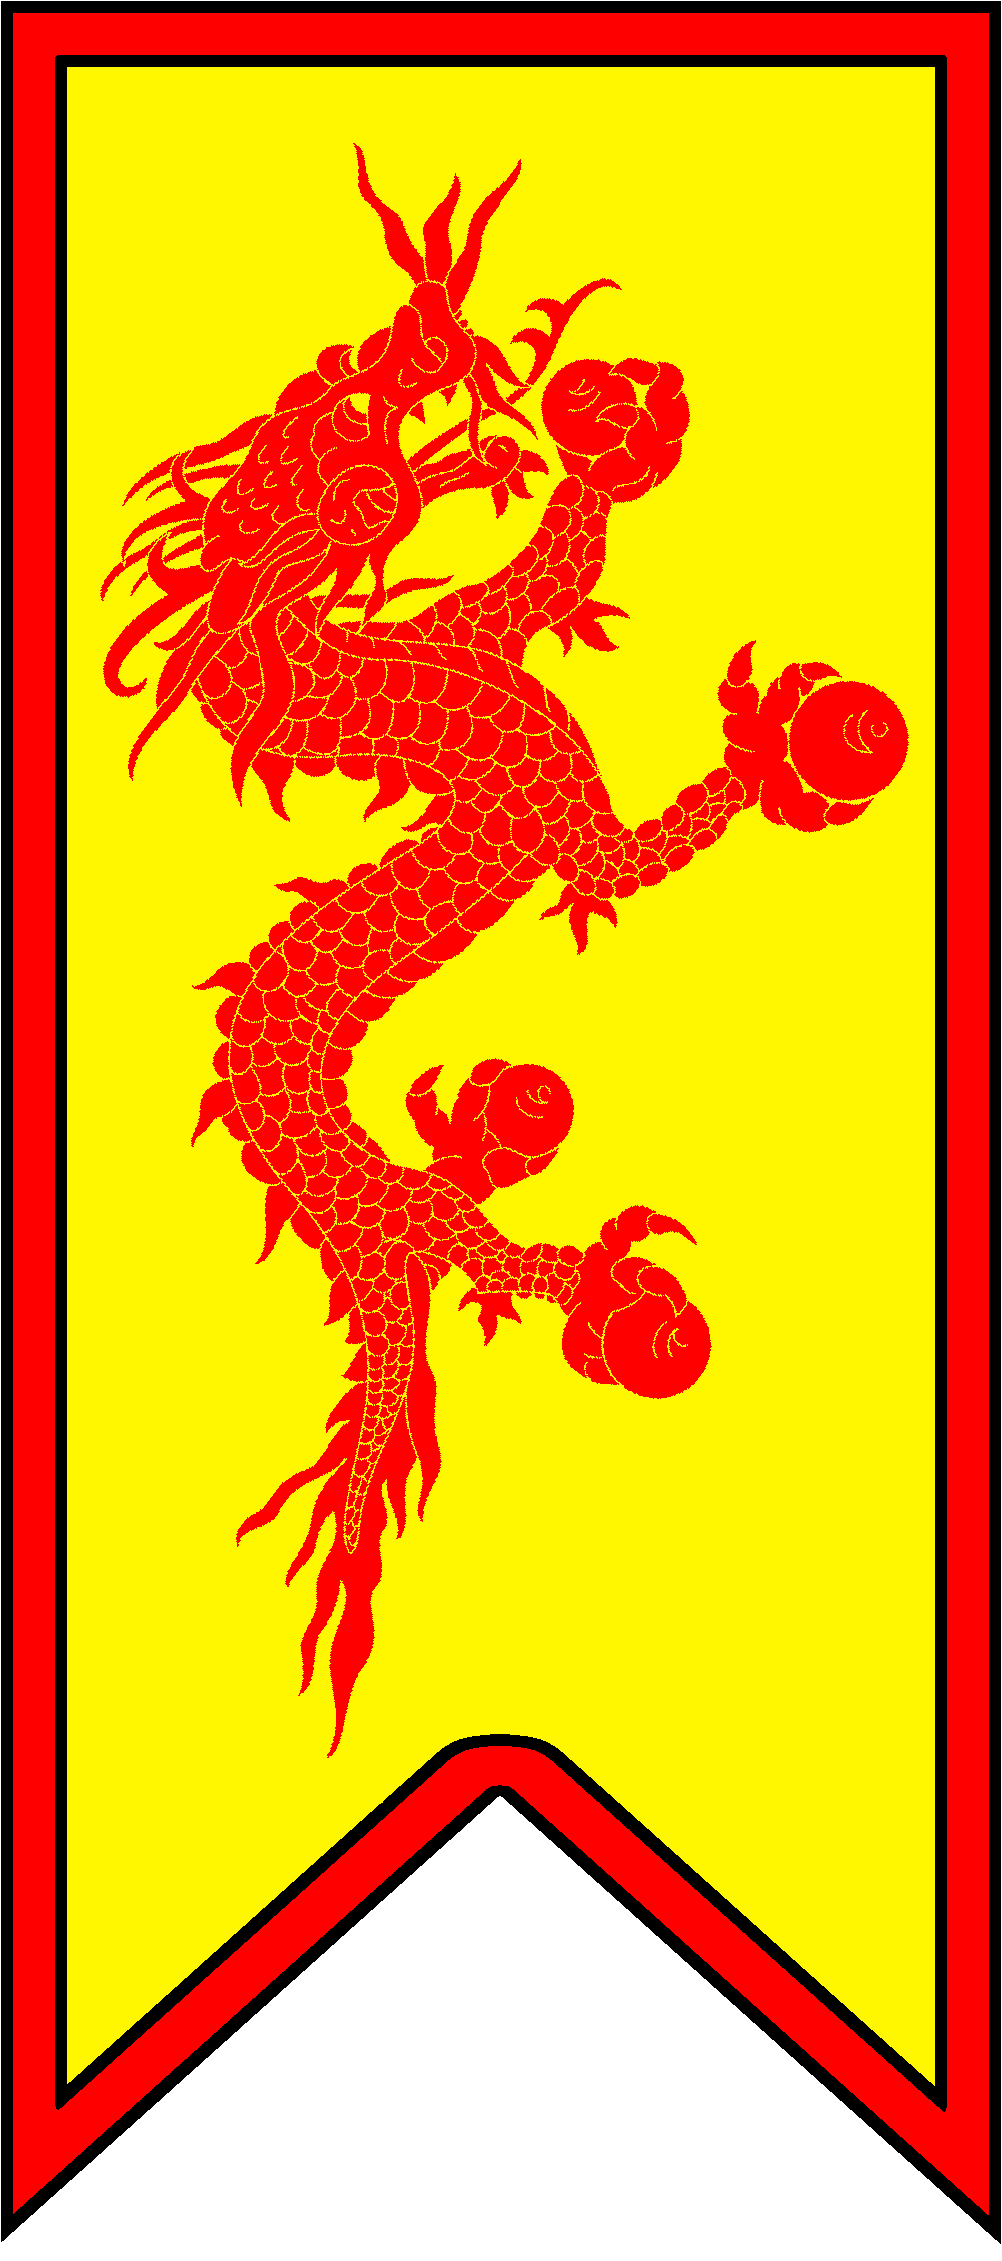 Medieval banner png. Ish for a castle